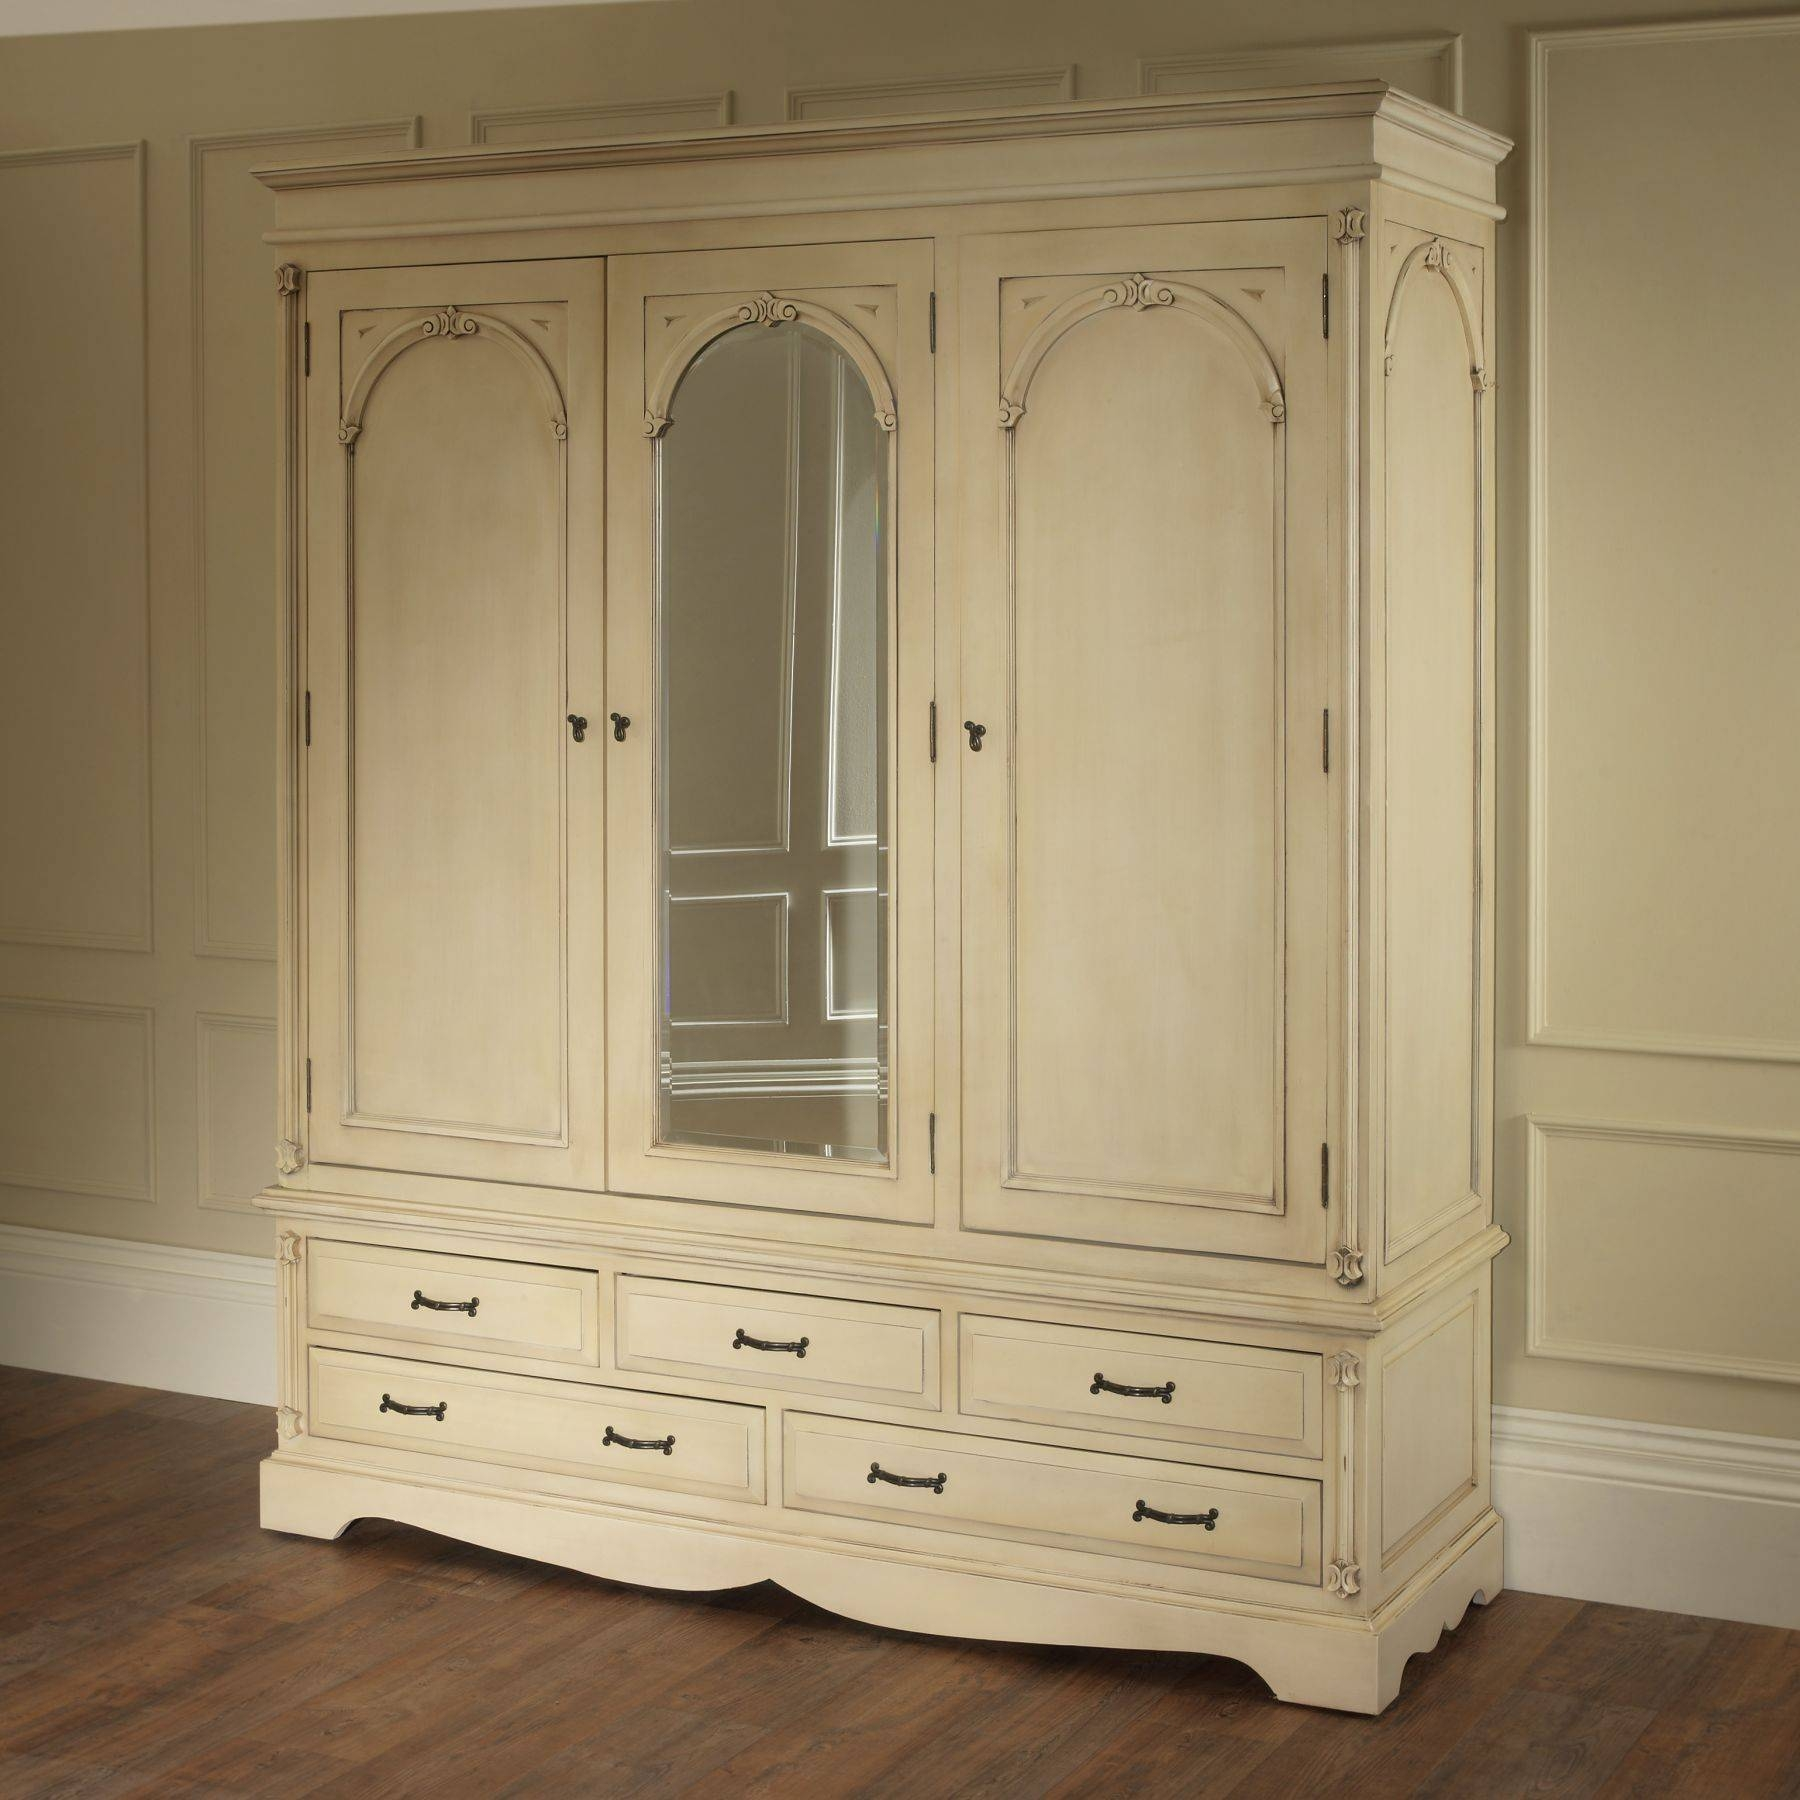 Victorian Antique French Wardrobe Works Wonderful Alongside Our Intended For 3 Door French Wardrobes (View 14 of 15)